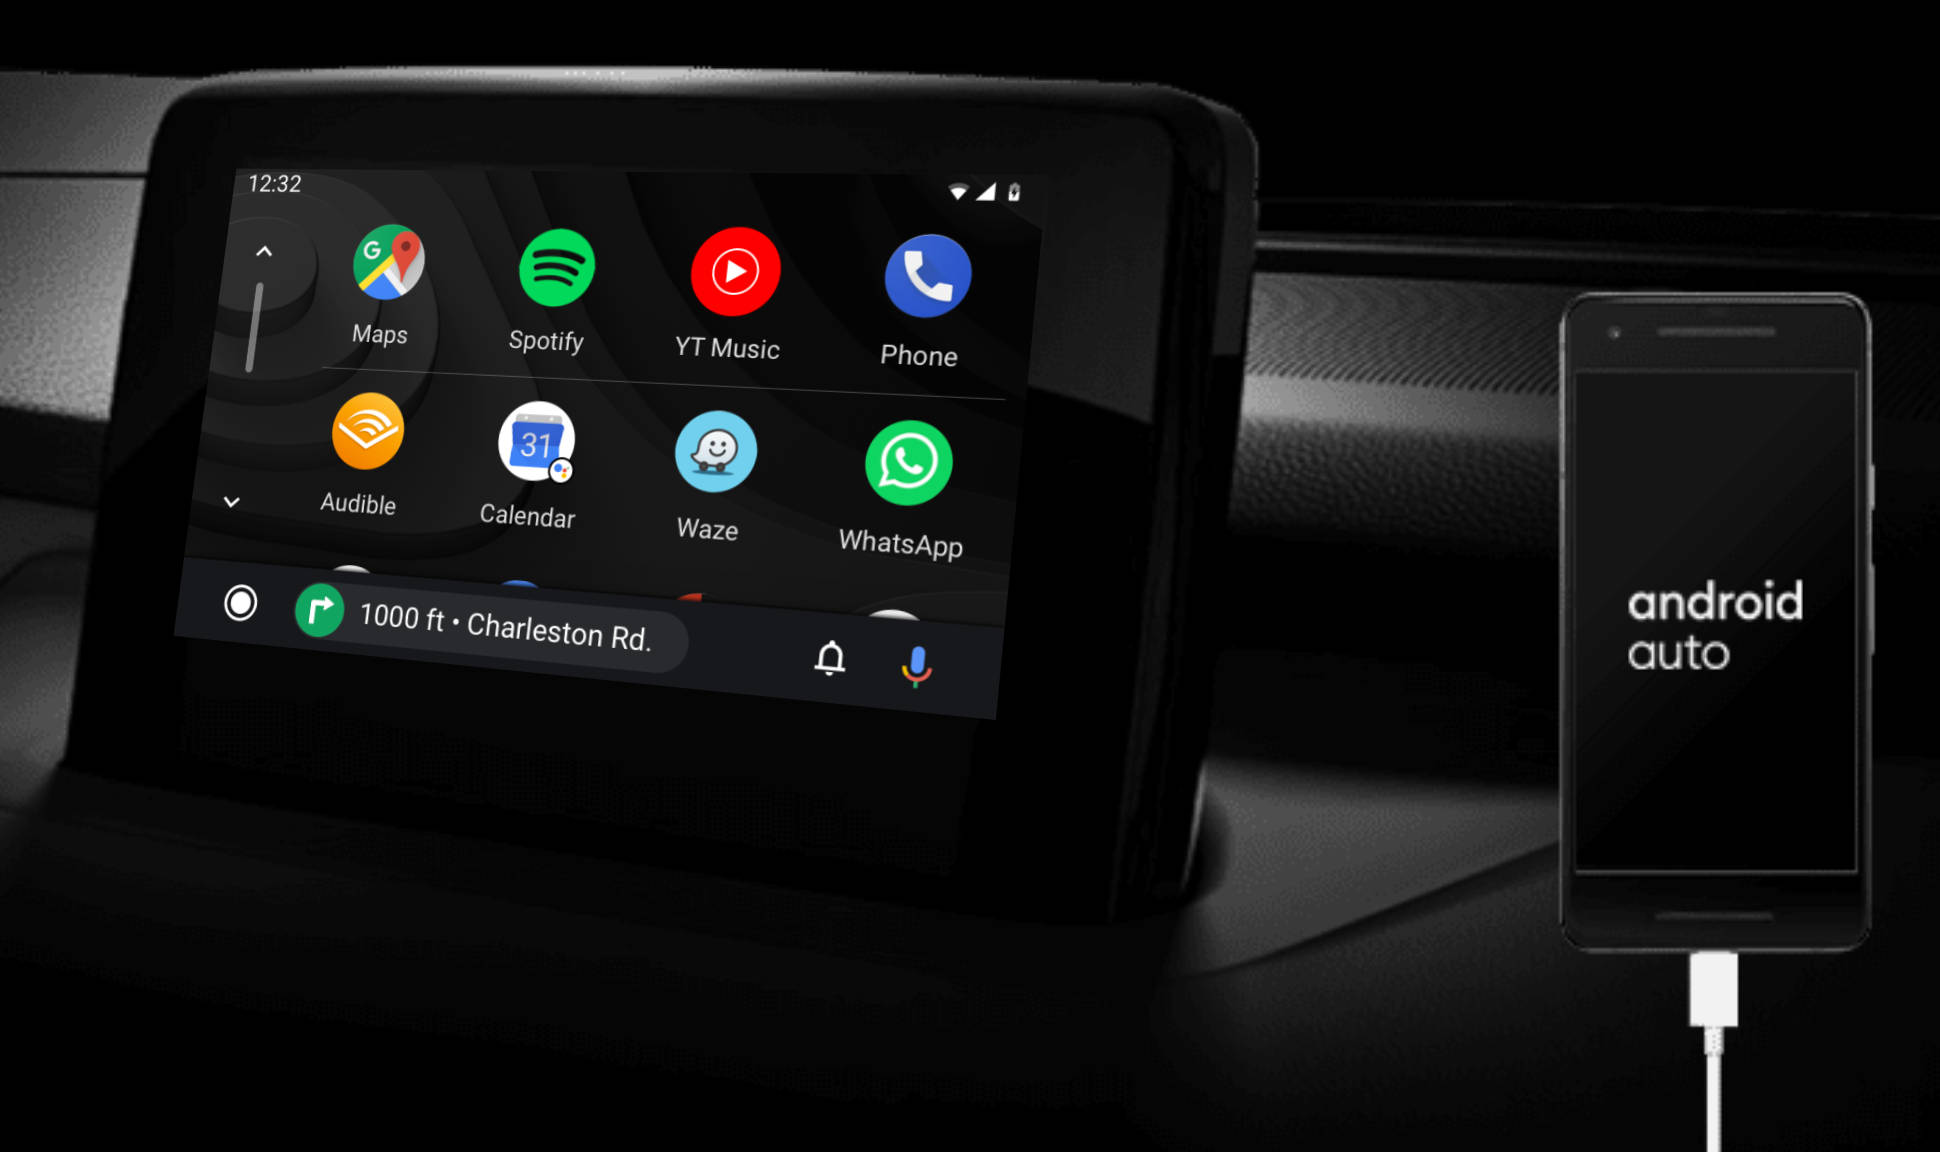 Android Auto problemy powiadomienia Asystent Google